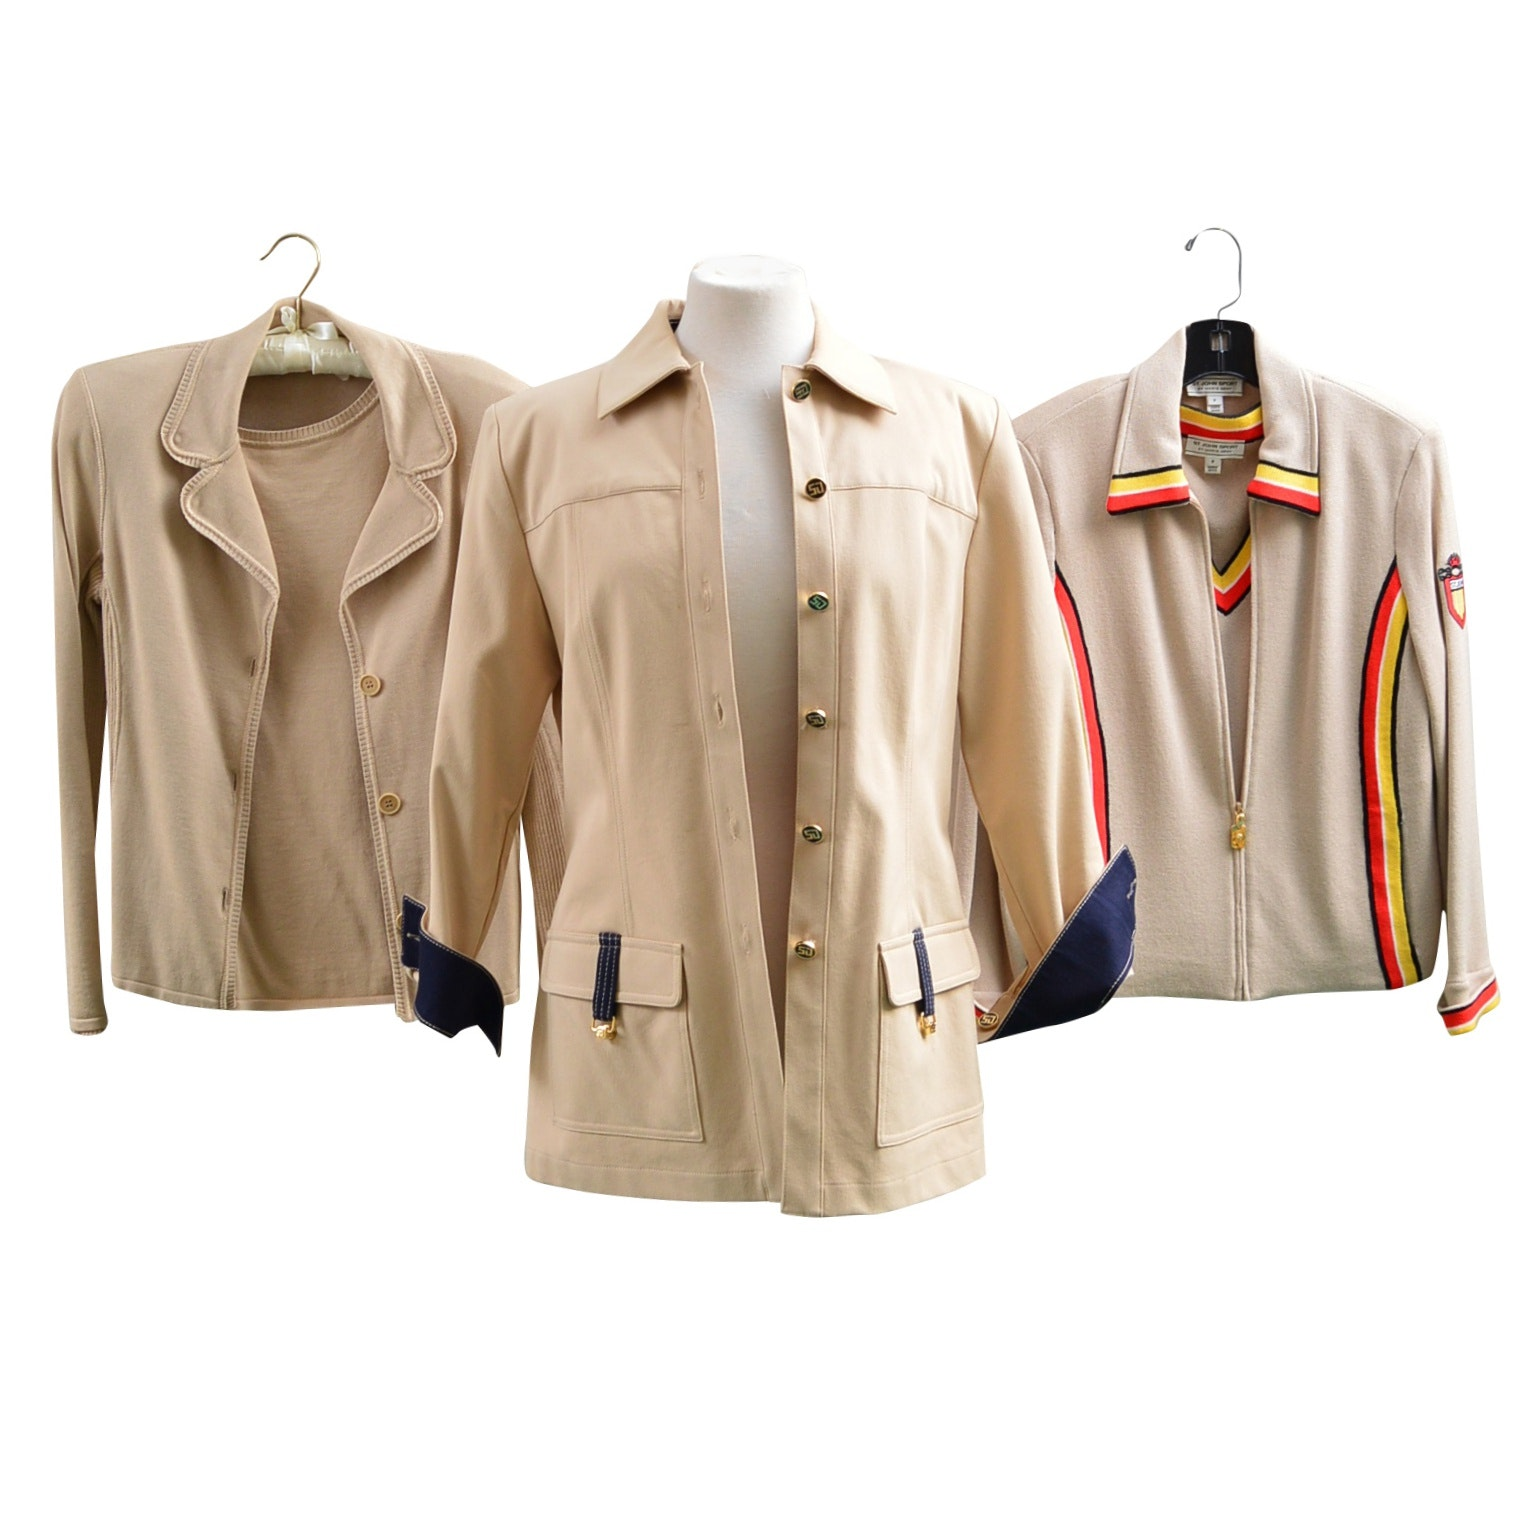 St. John Sport Knit Separates and Cotton Jacket, with Piazza Sempione Separates